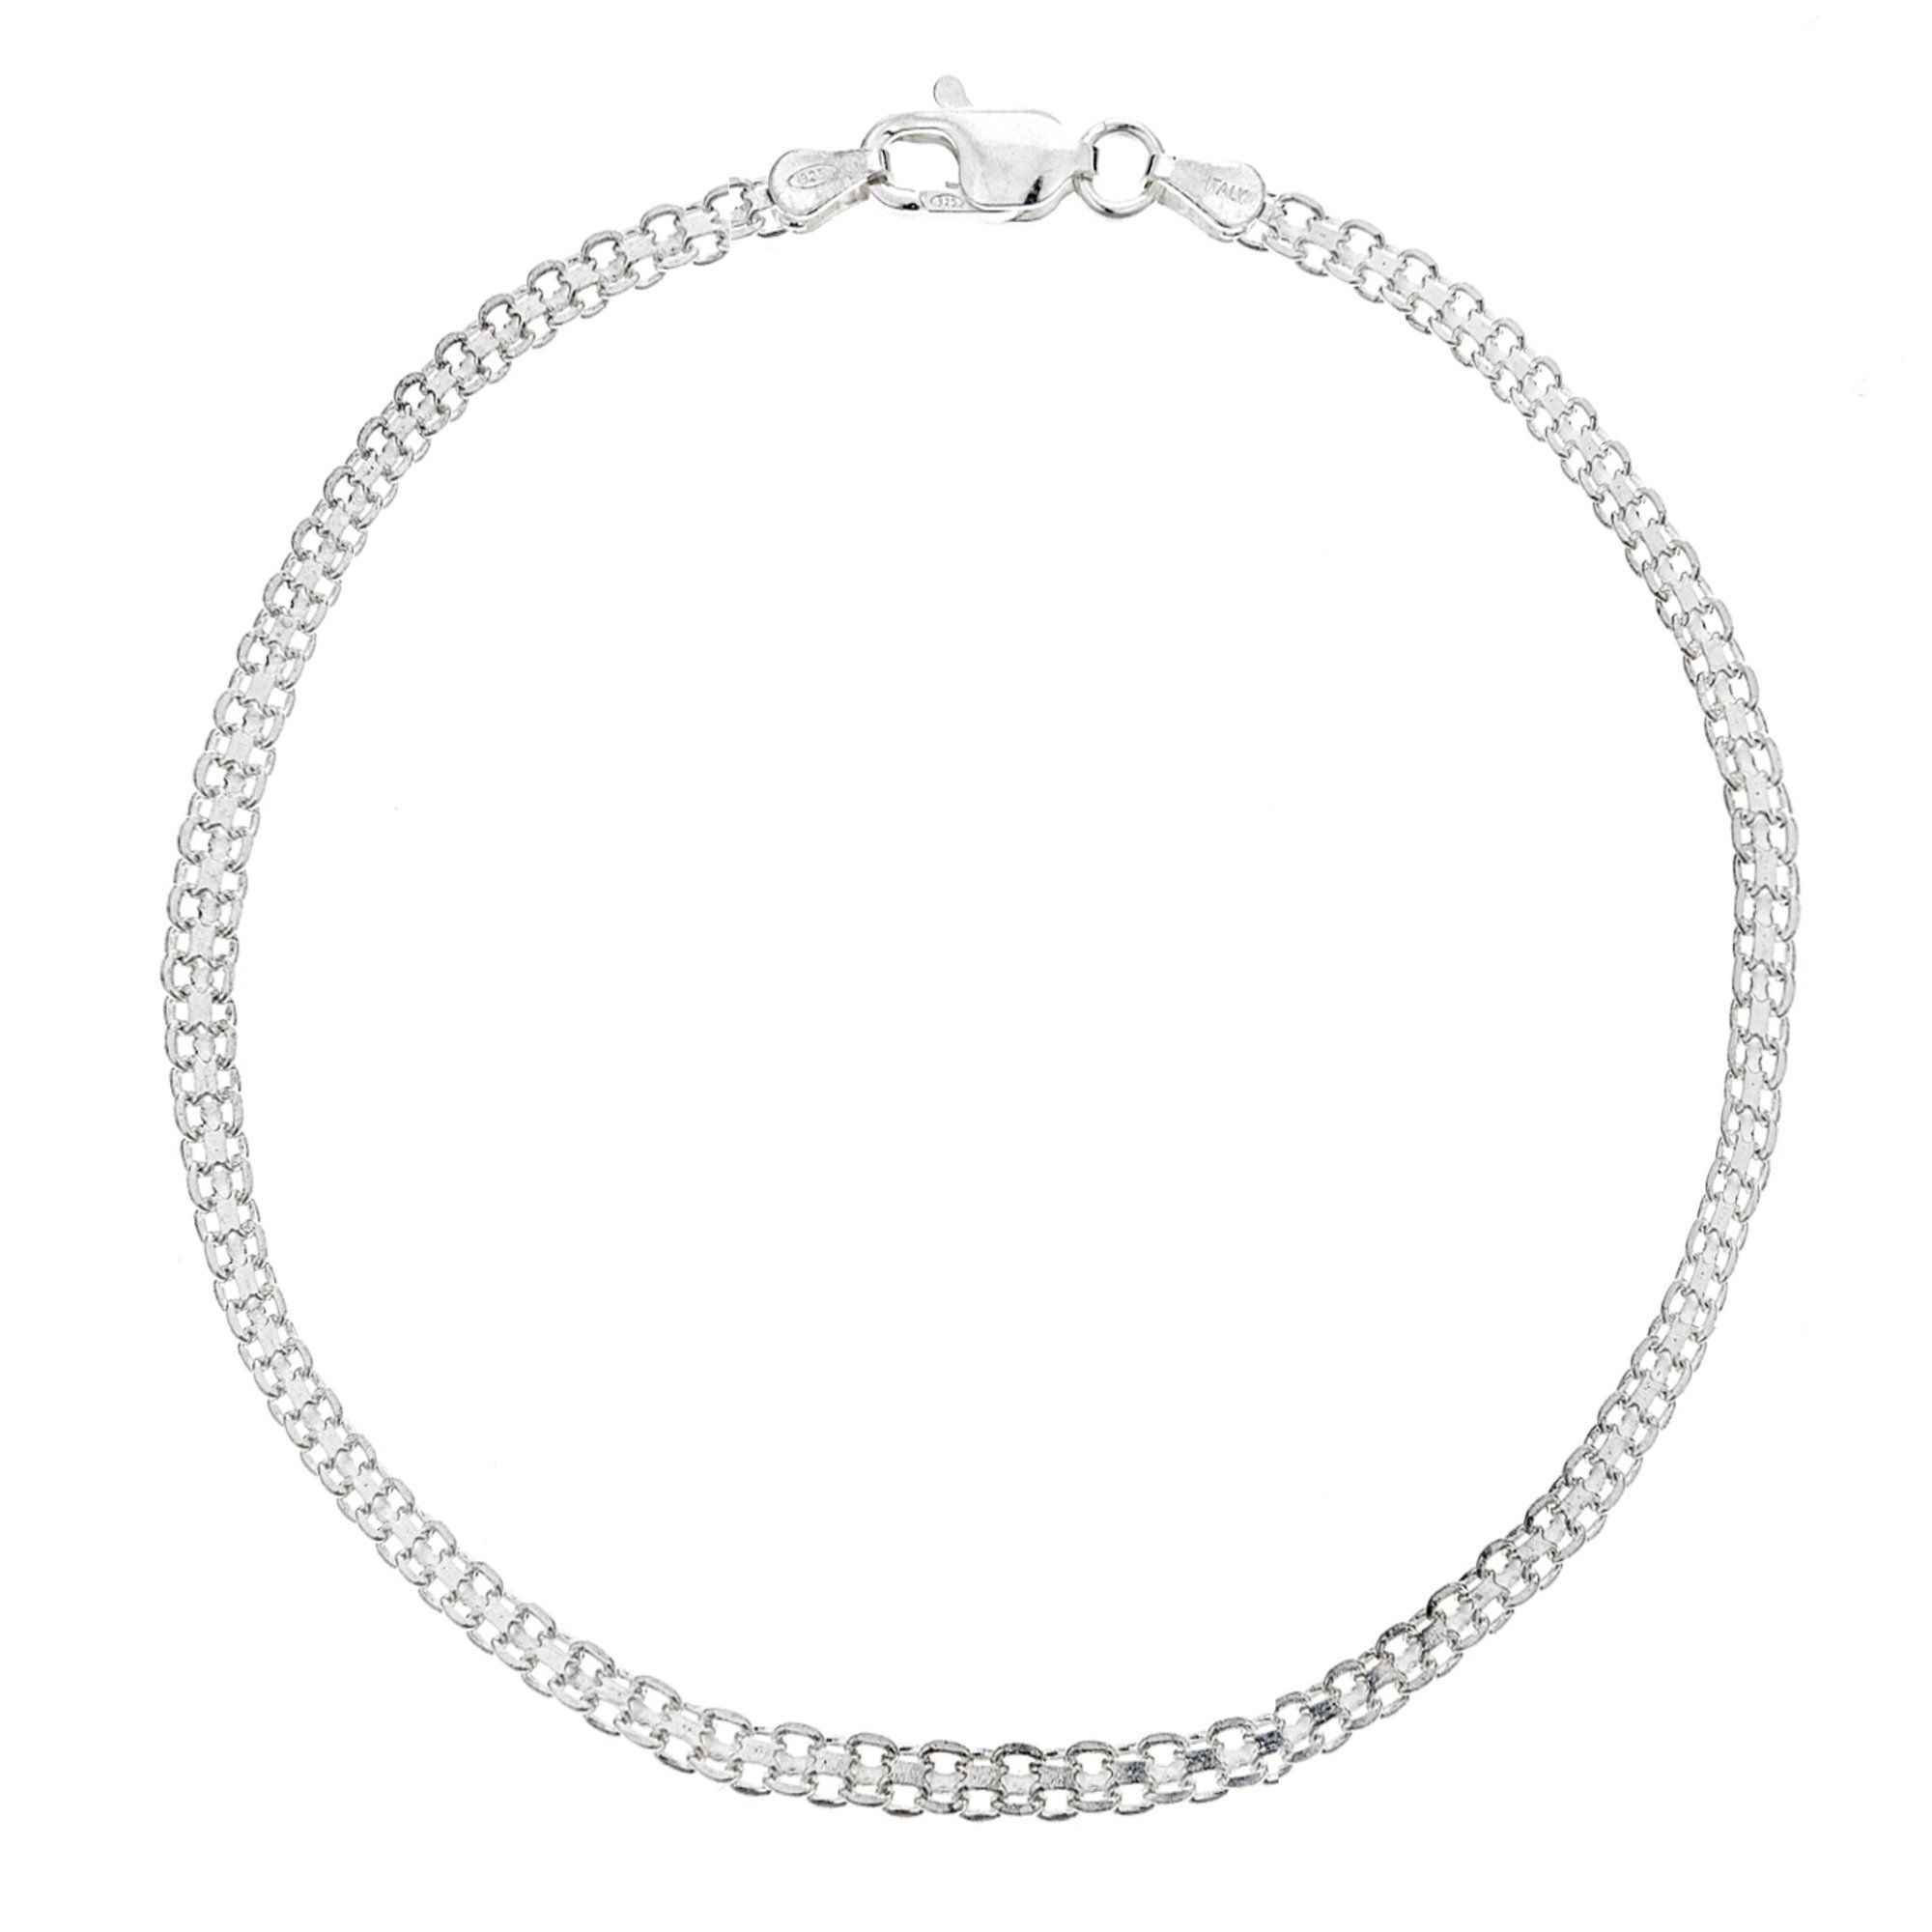 anklets women ankle for reviews anklet accessorize india online real silver buy best bracelet prices bracelets